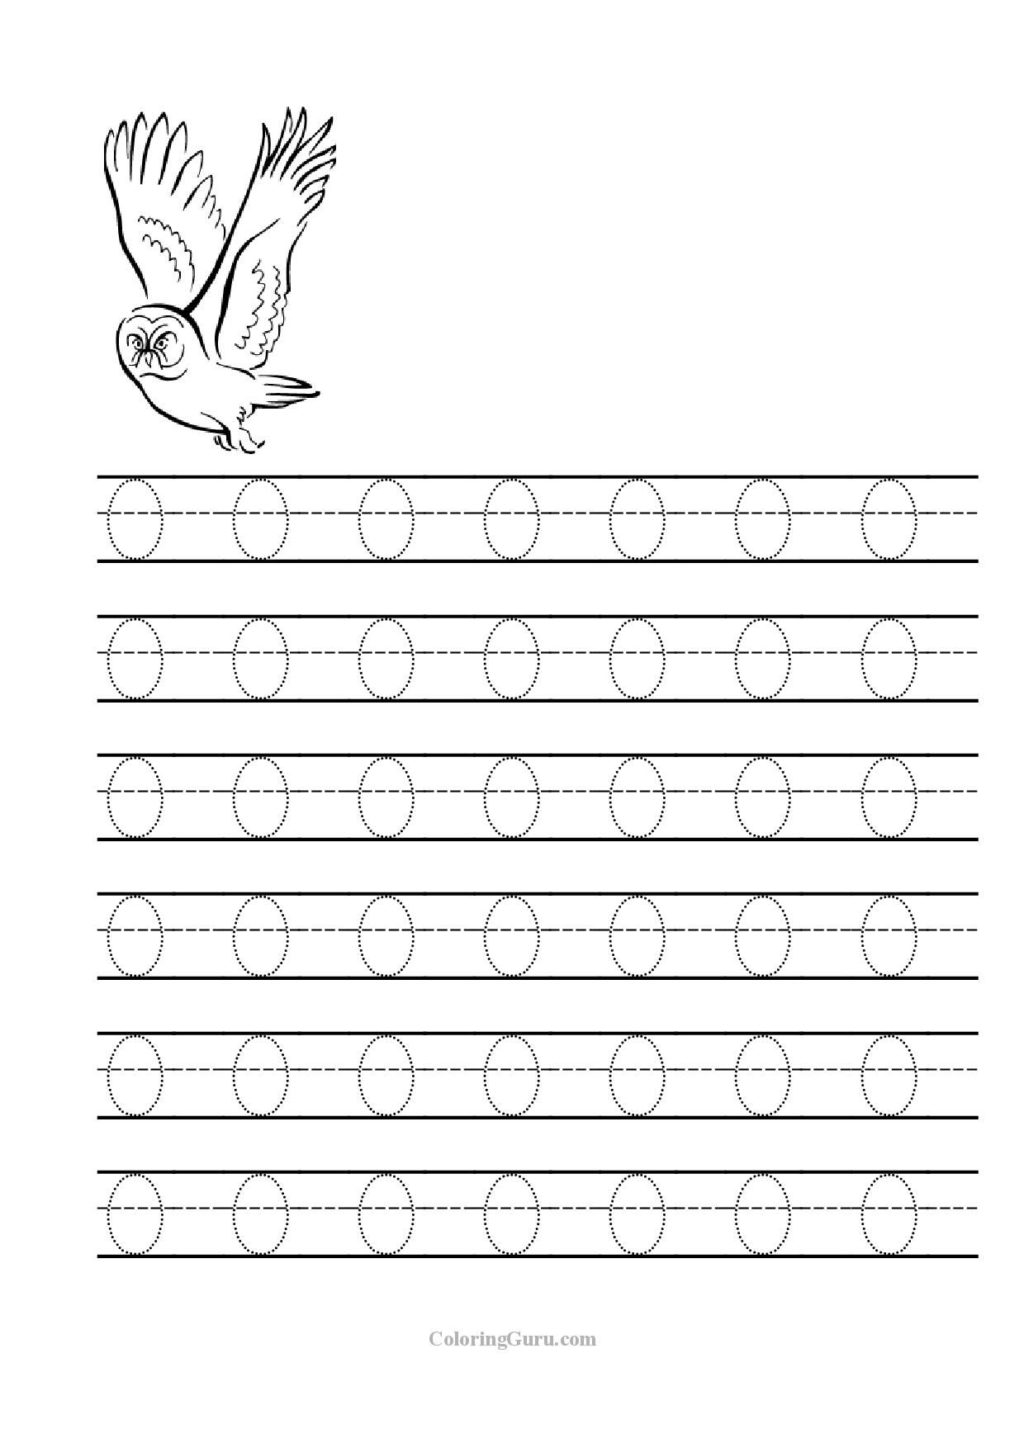 Worksheet ~ Fantastic Letters For Pre K Free Printable